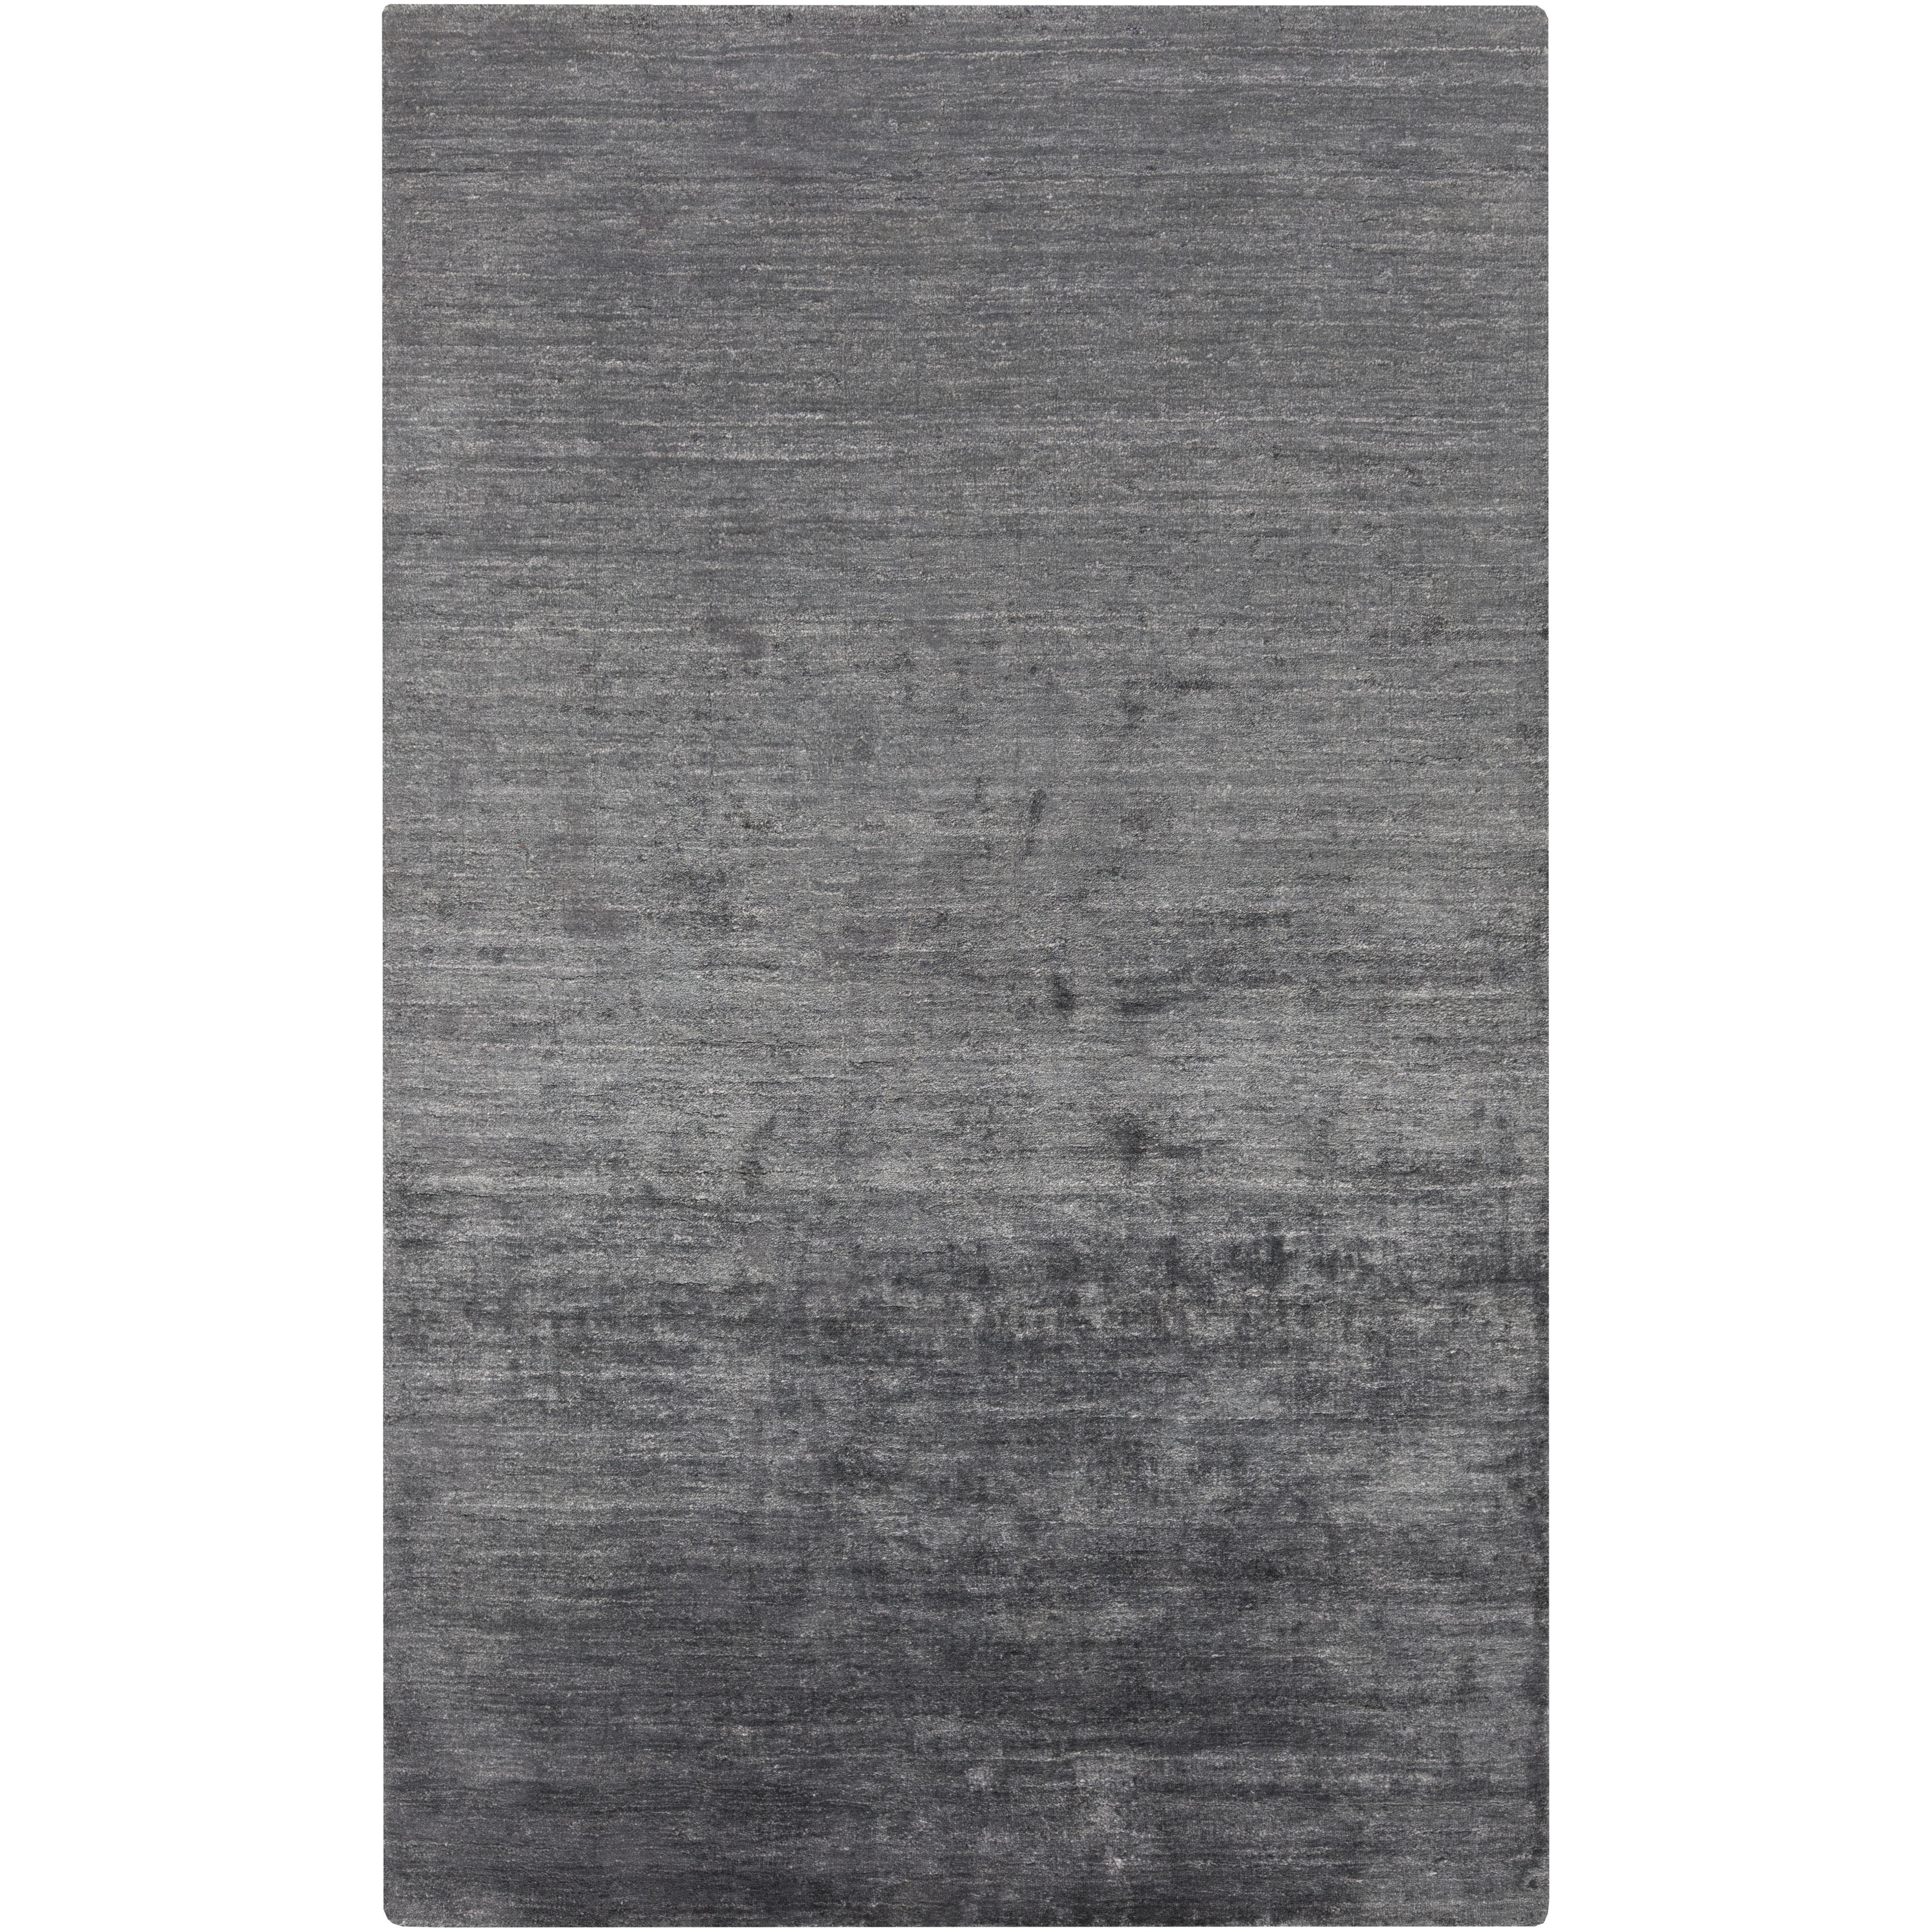 Haize 2' x 3' by Ruby-Gordon Accents at Ruby Gordon Home